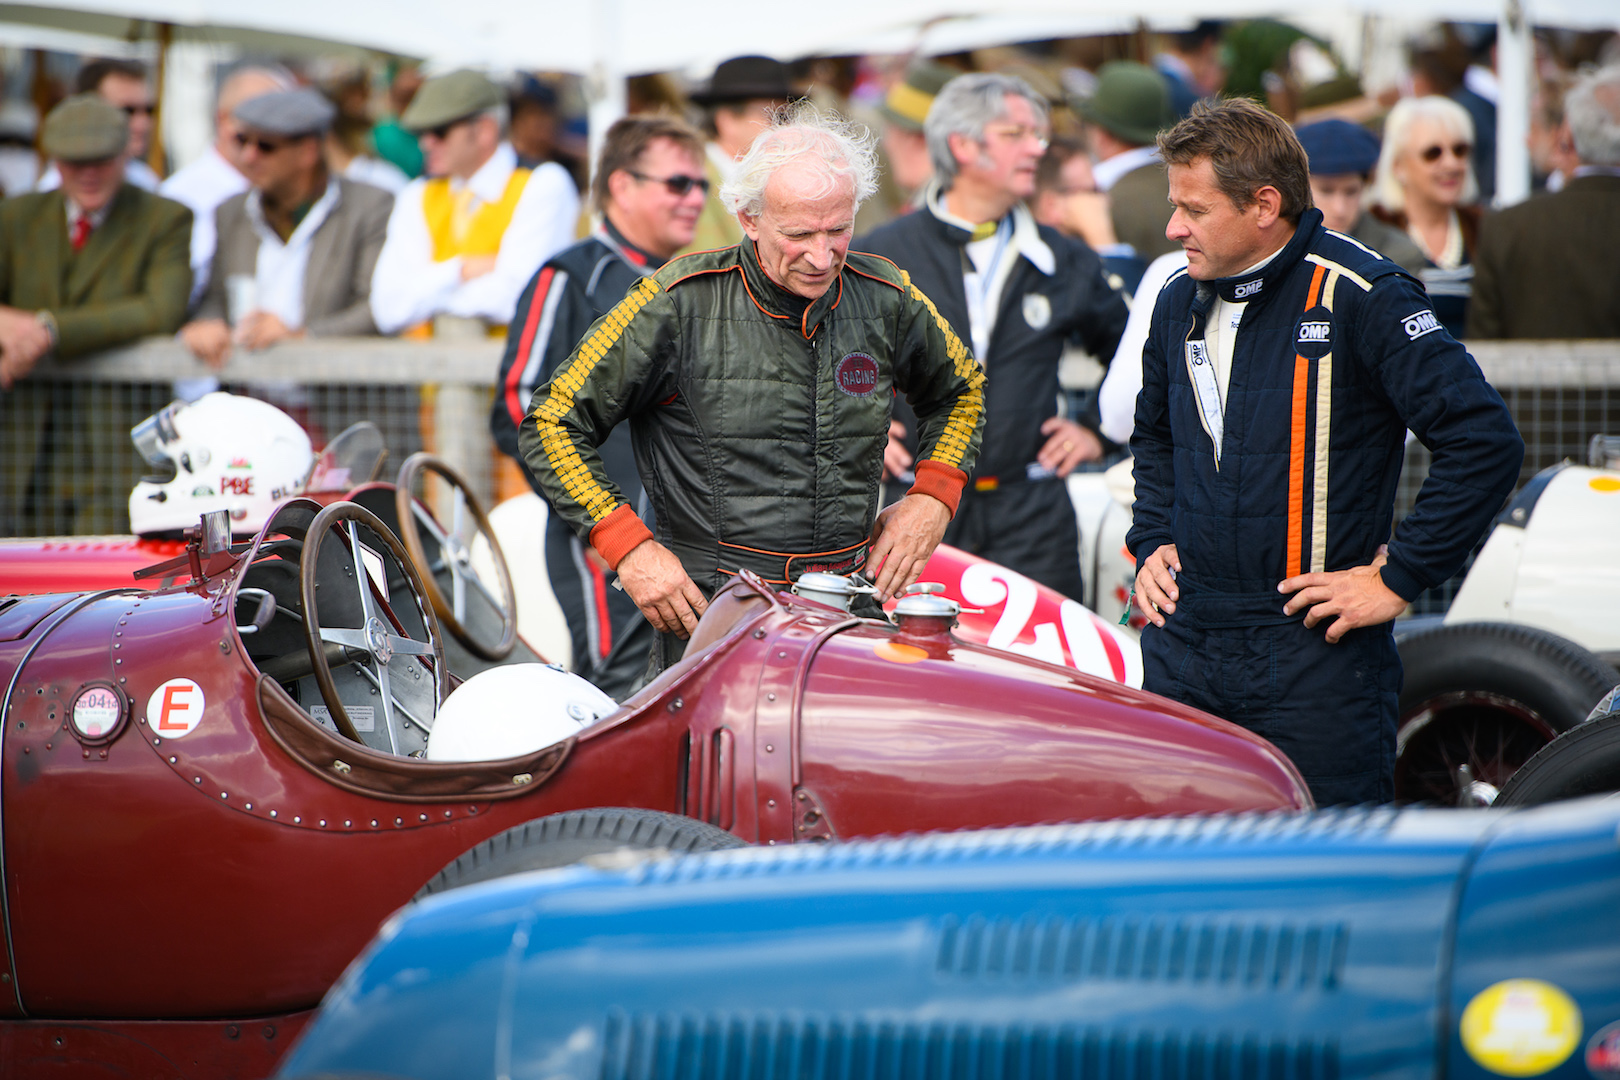 Take to the Road News 2018 Goodwood Revival Honours Two Decades of Motoring Heritage and Culture